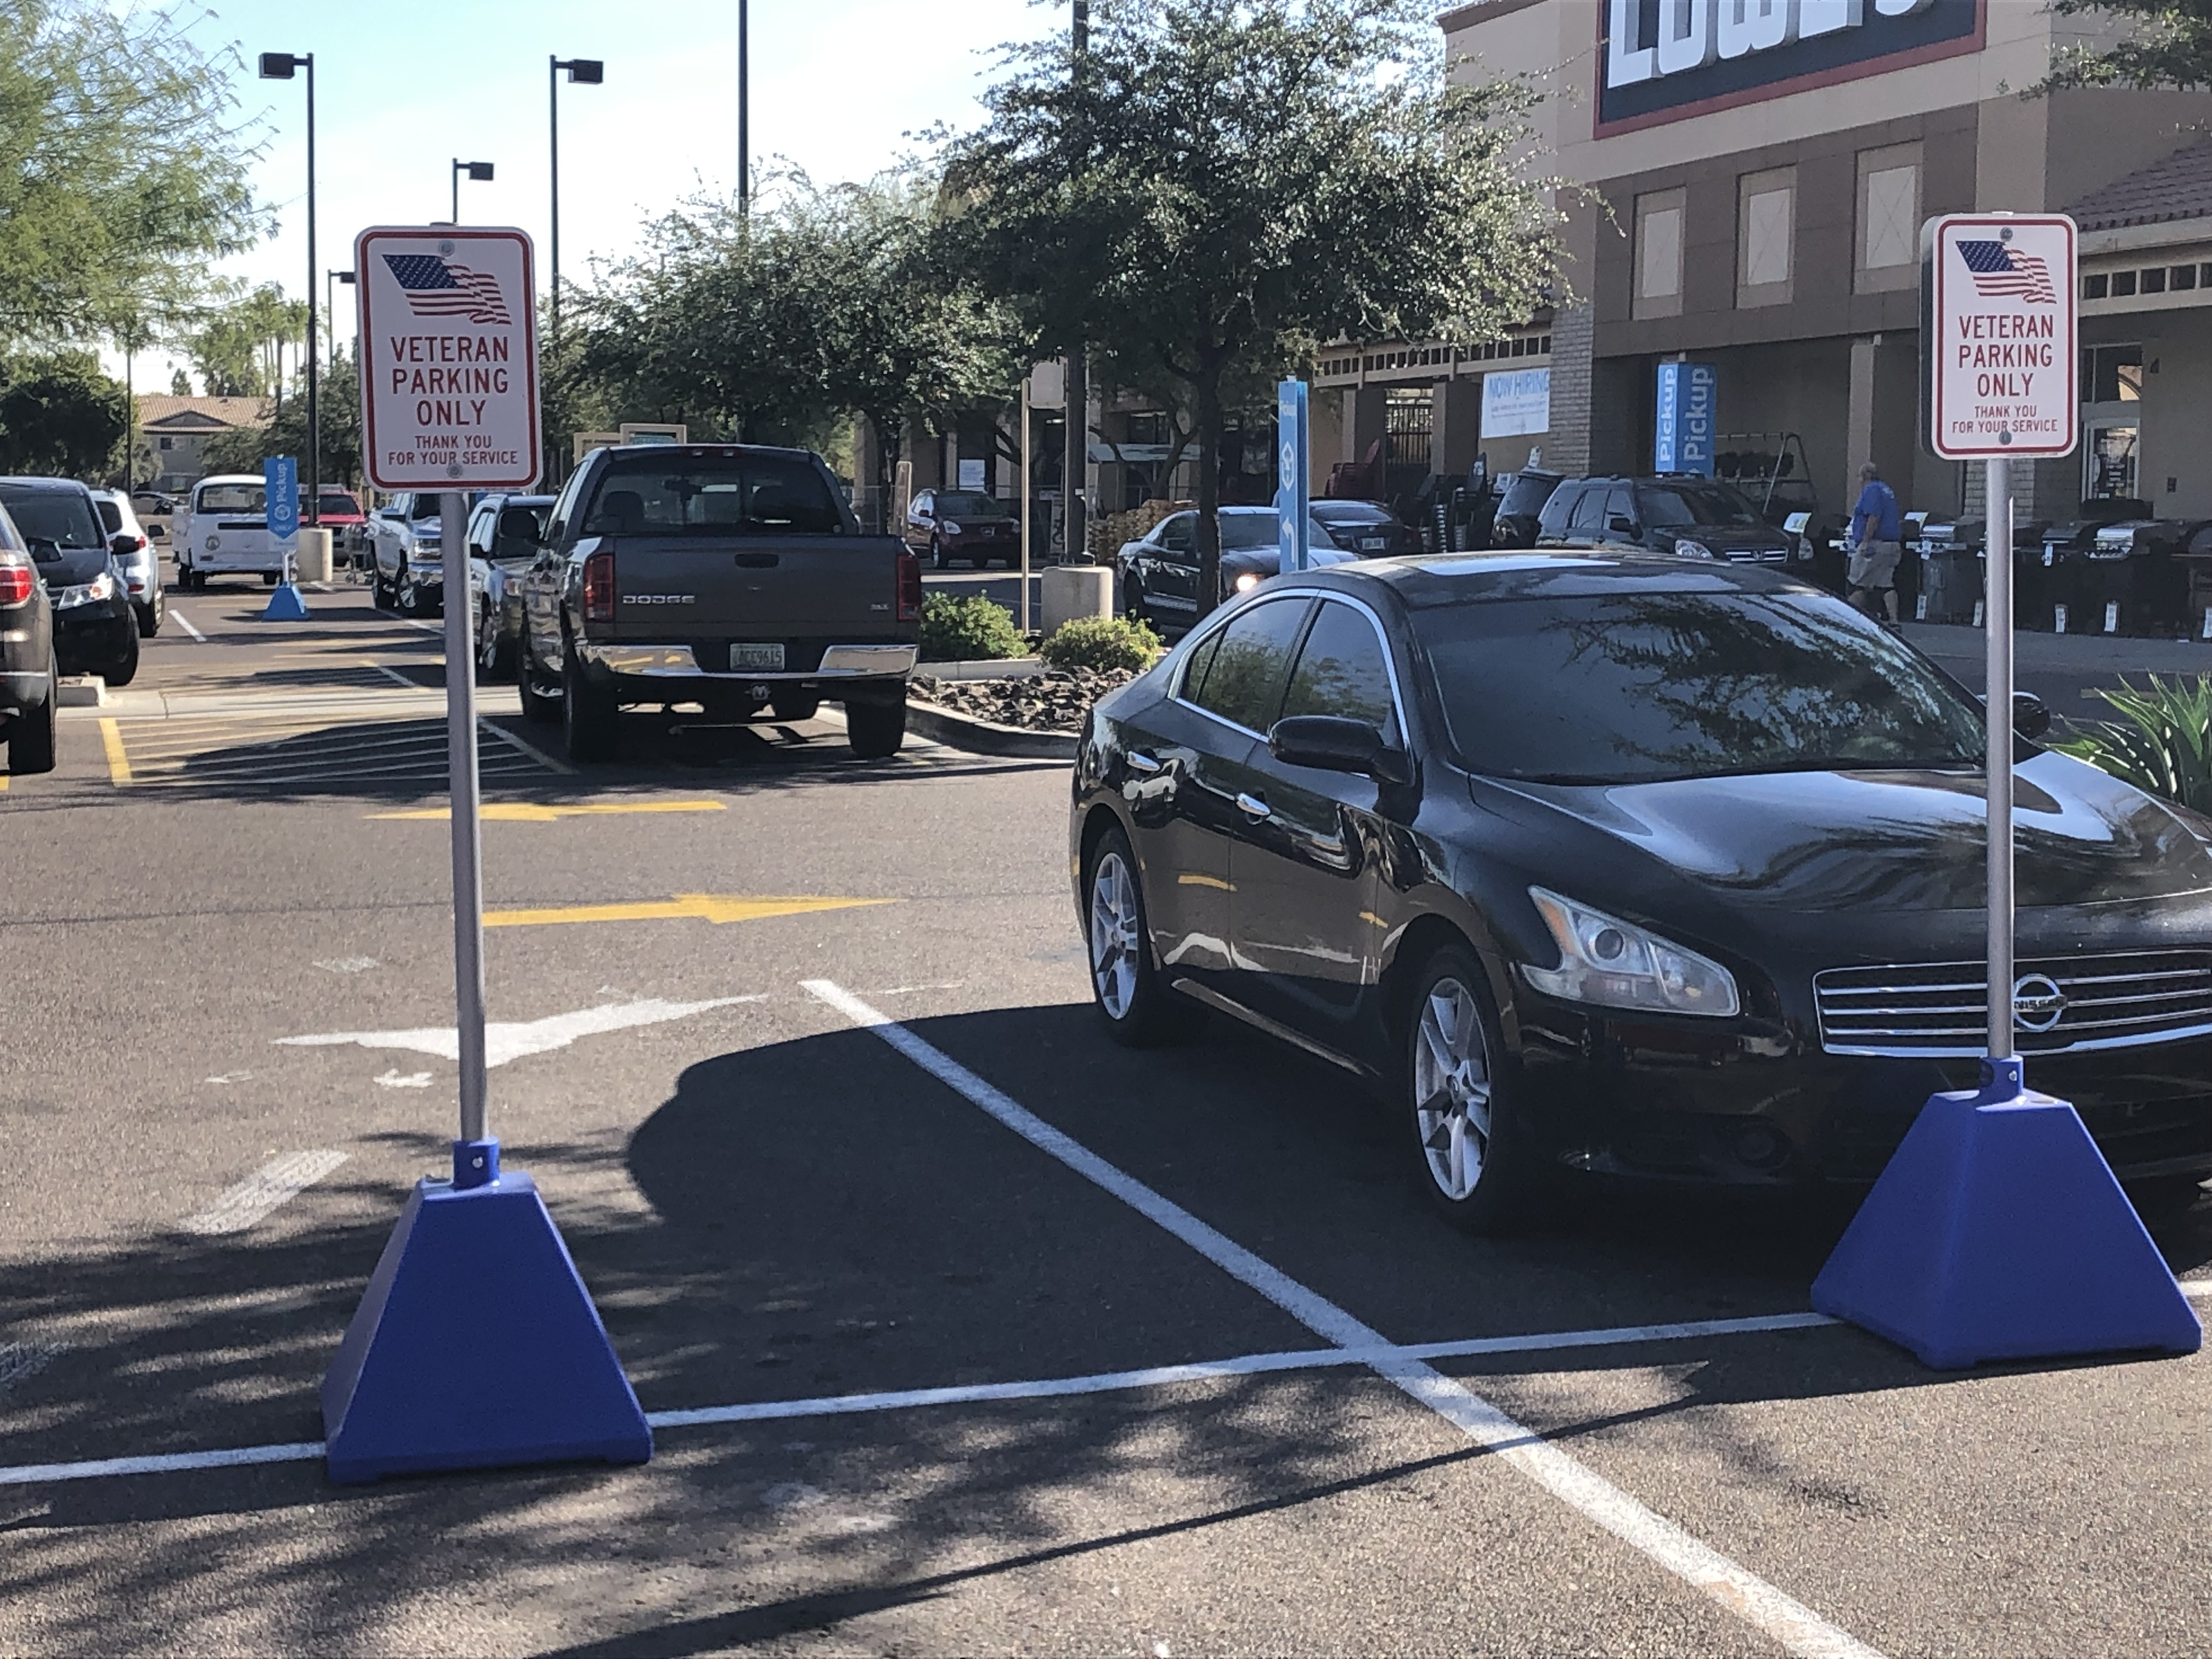 Blue Pyramid Sign Bases for Veteran Parking at Lowe's